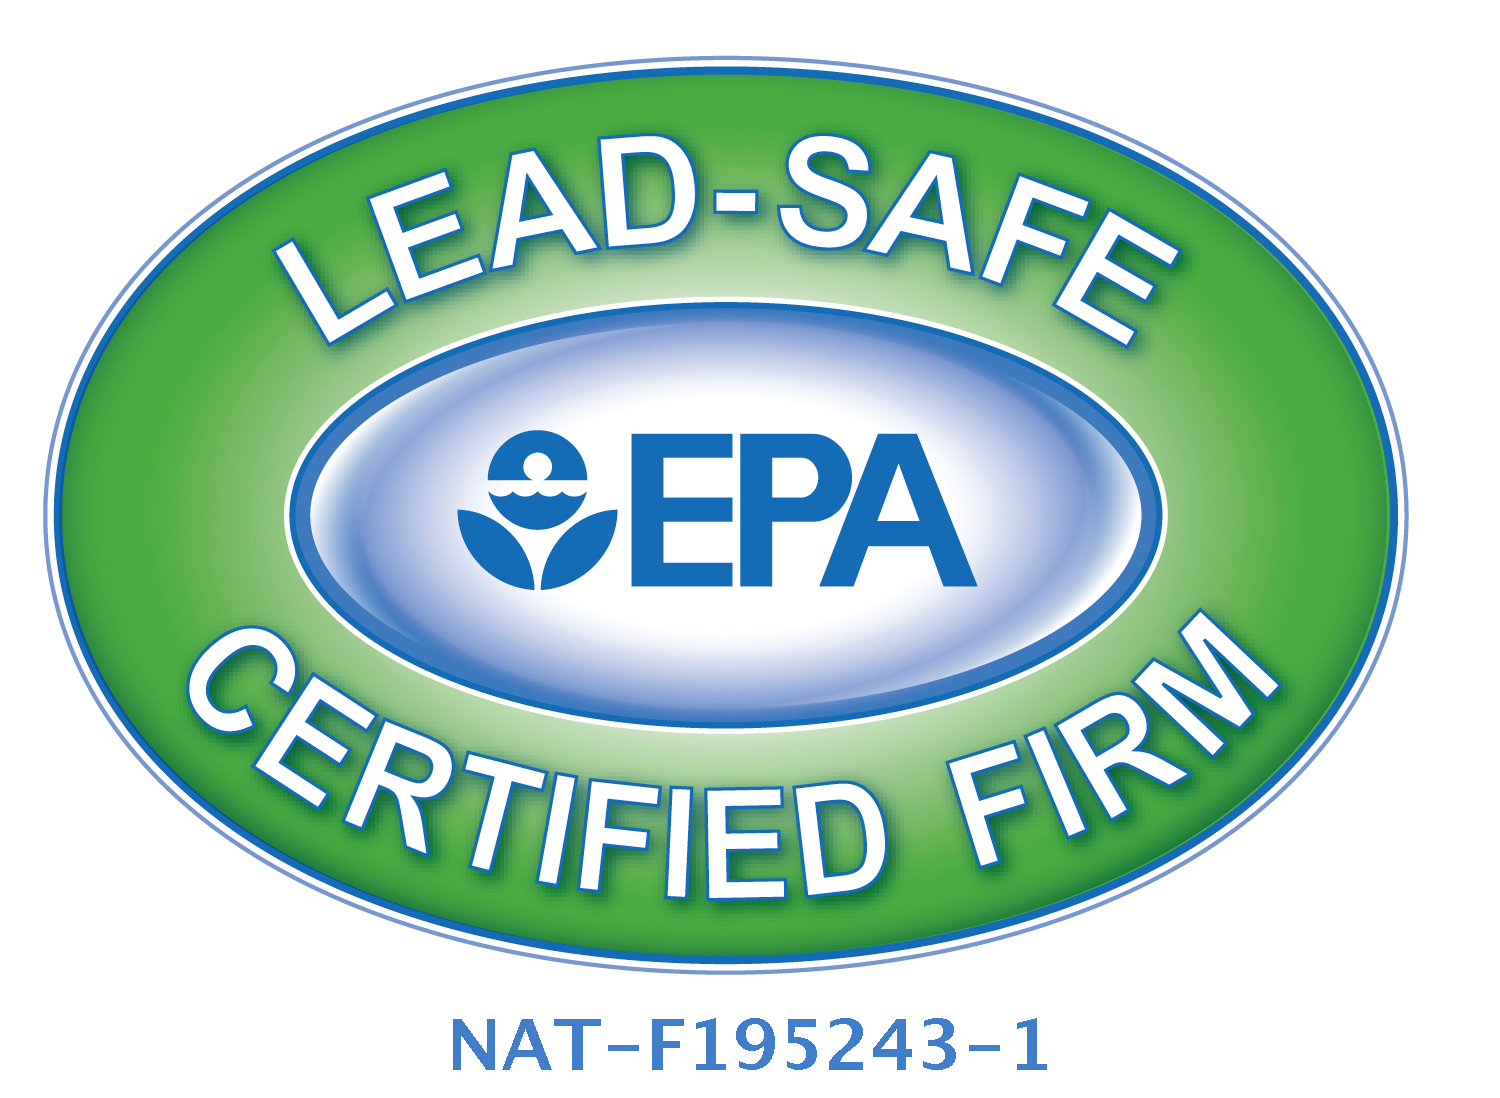 EPA_Leadsafe_Logo_NAT-F195243-1.jpg